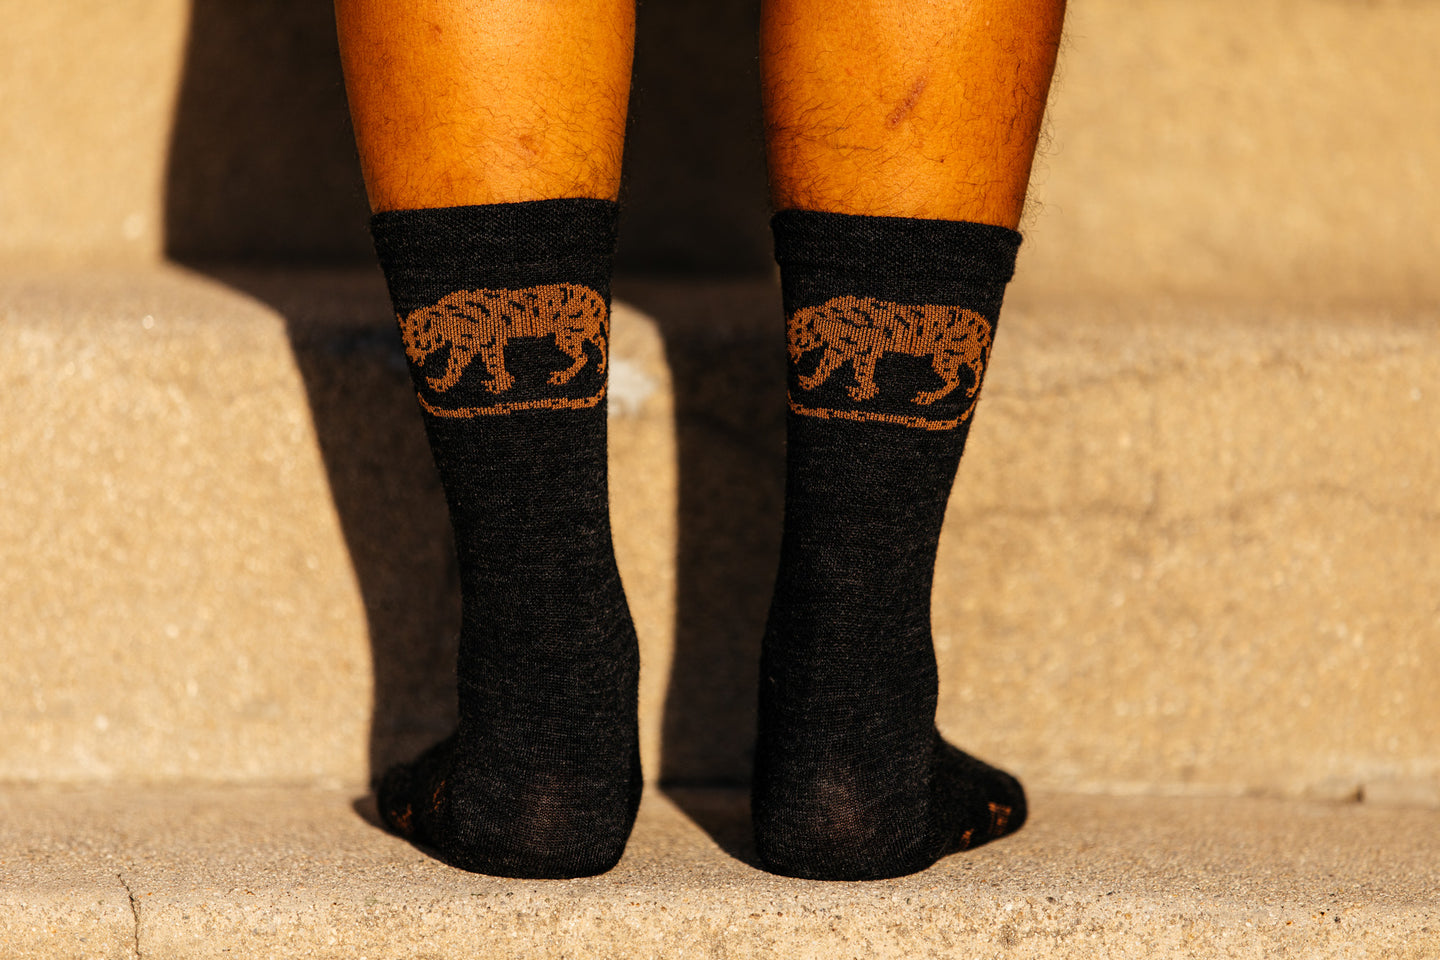 Socks - Jackal - Obsidian Black Heathered Wool